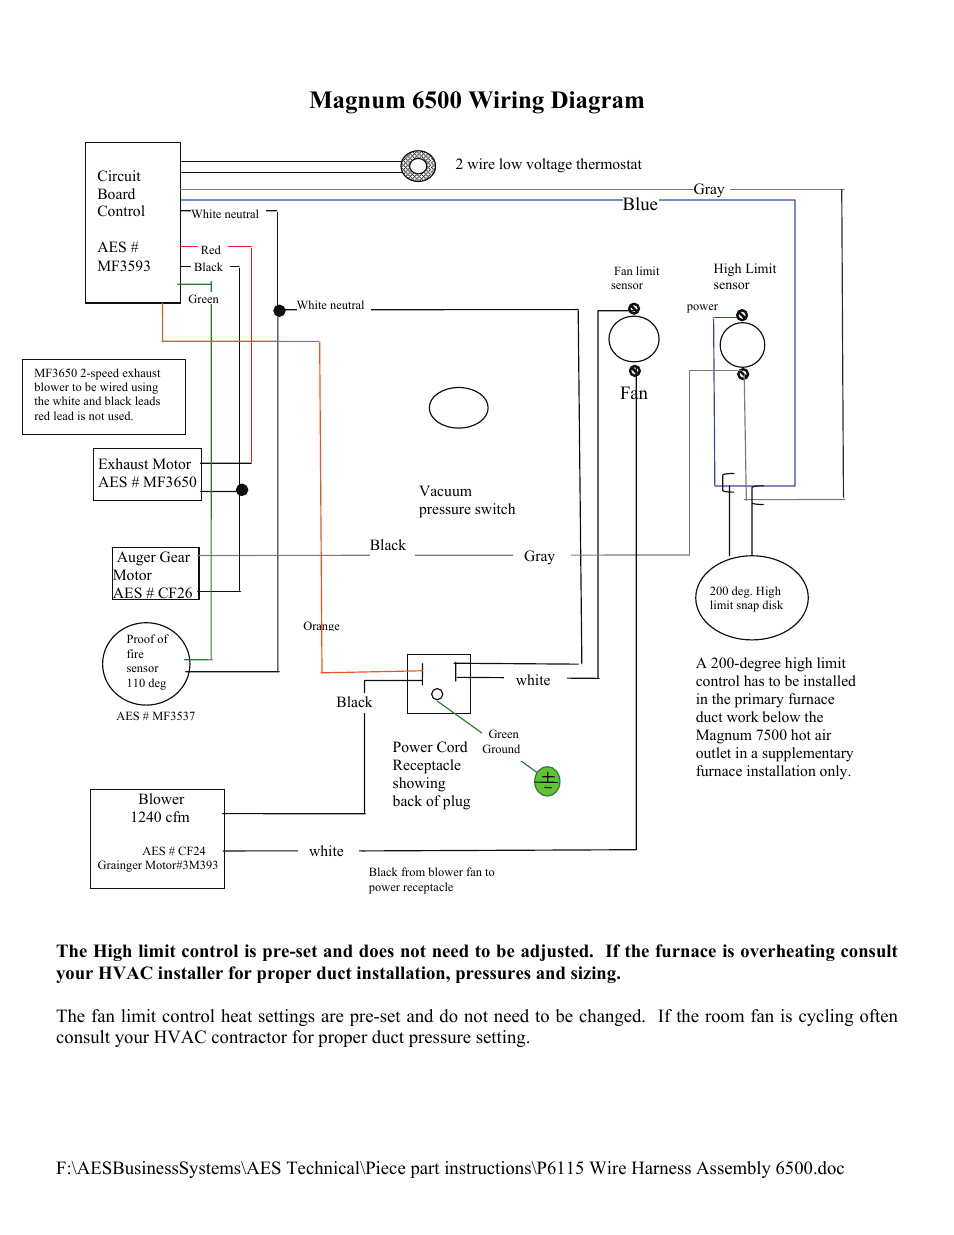 medium resolution of magnum 6500 wiring diagram american energy systems p6115 wire harness user manual page 2 2